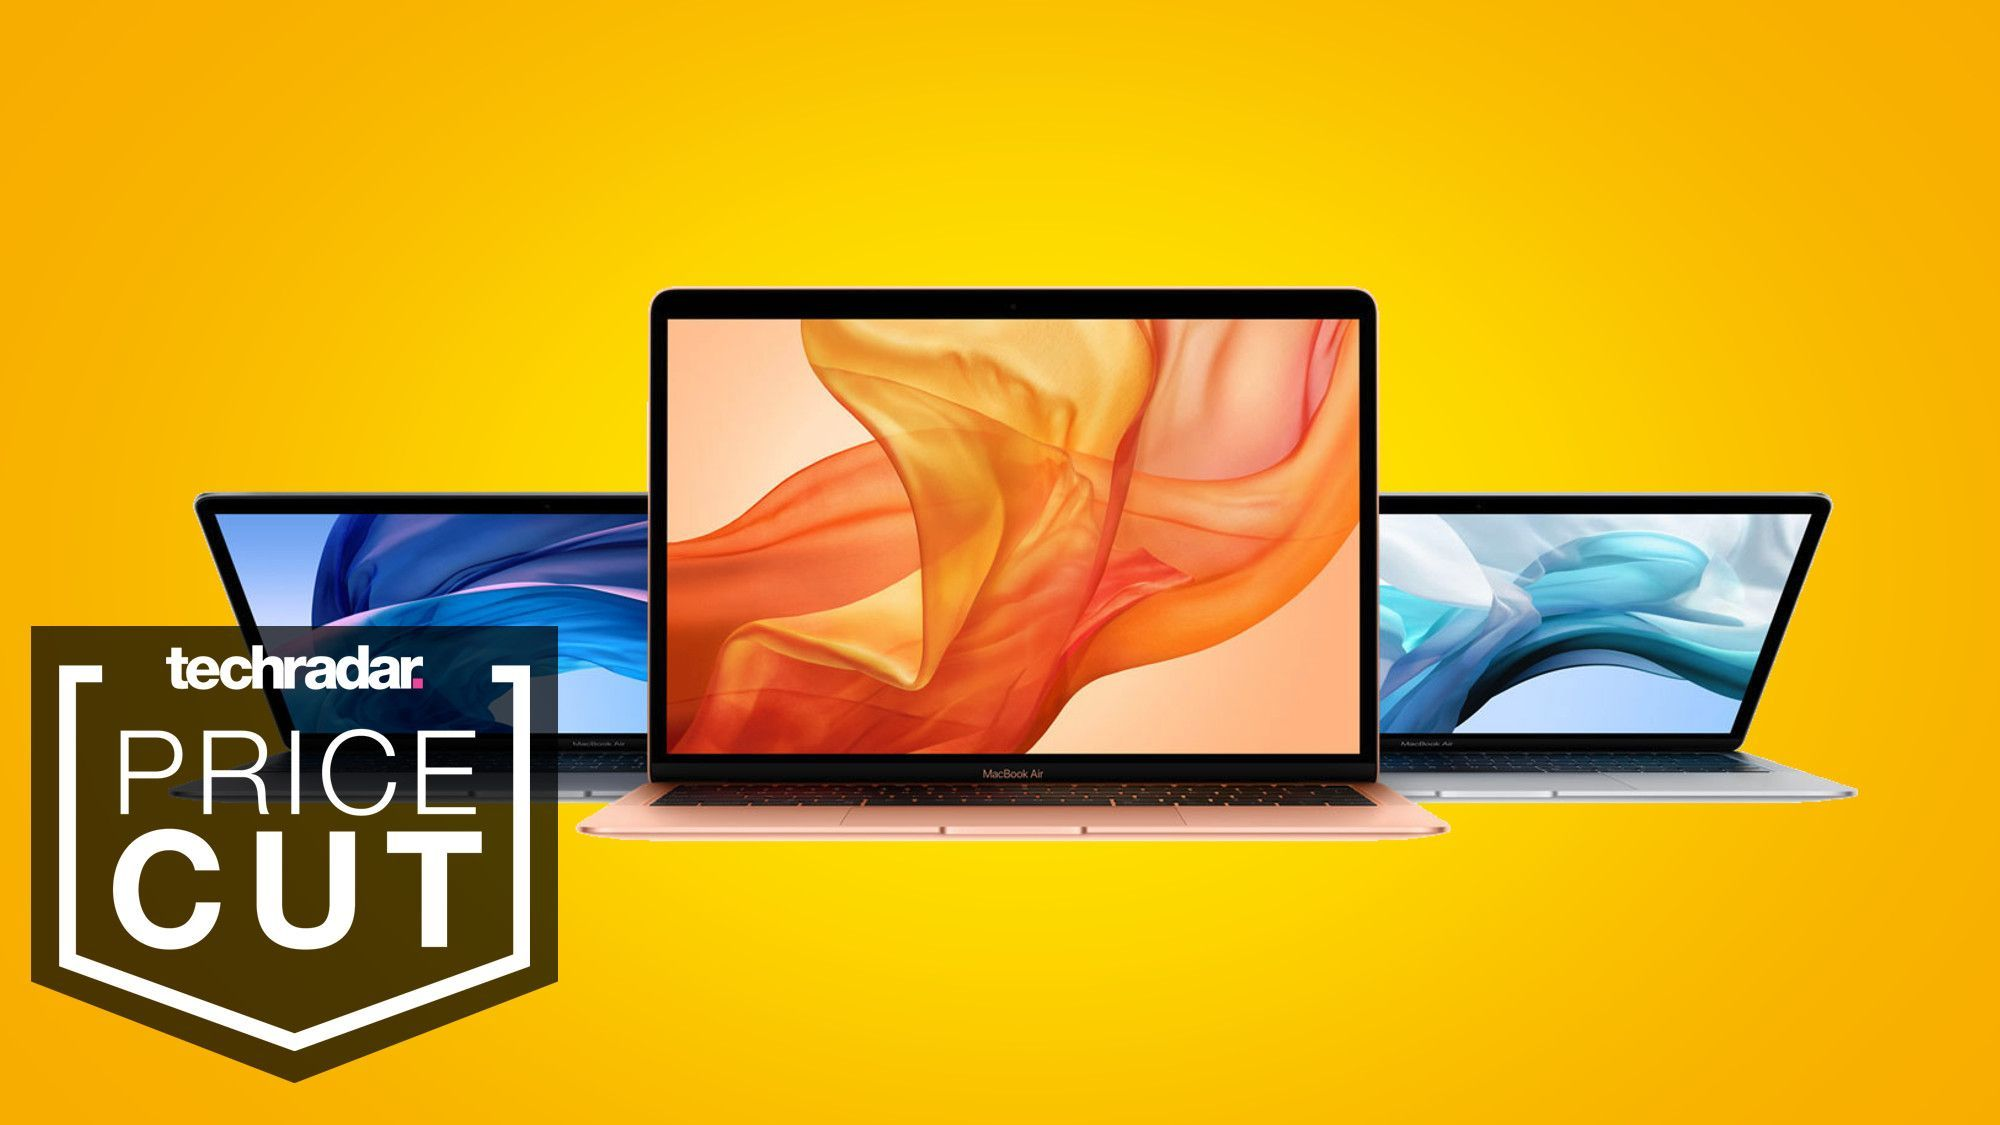 Black Friday 2020 Macbook Deals What To Expect This Year In 2020 Macbook Deals Macbook Macbook Air